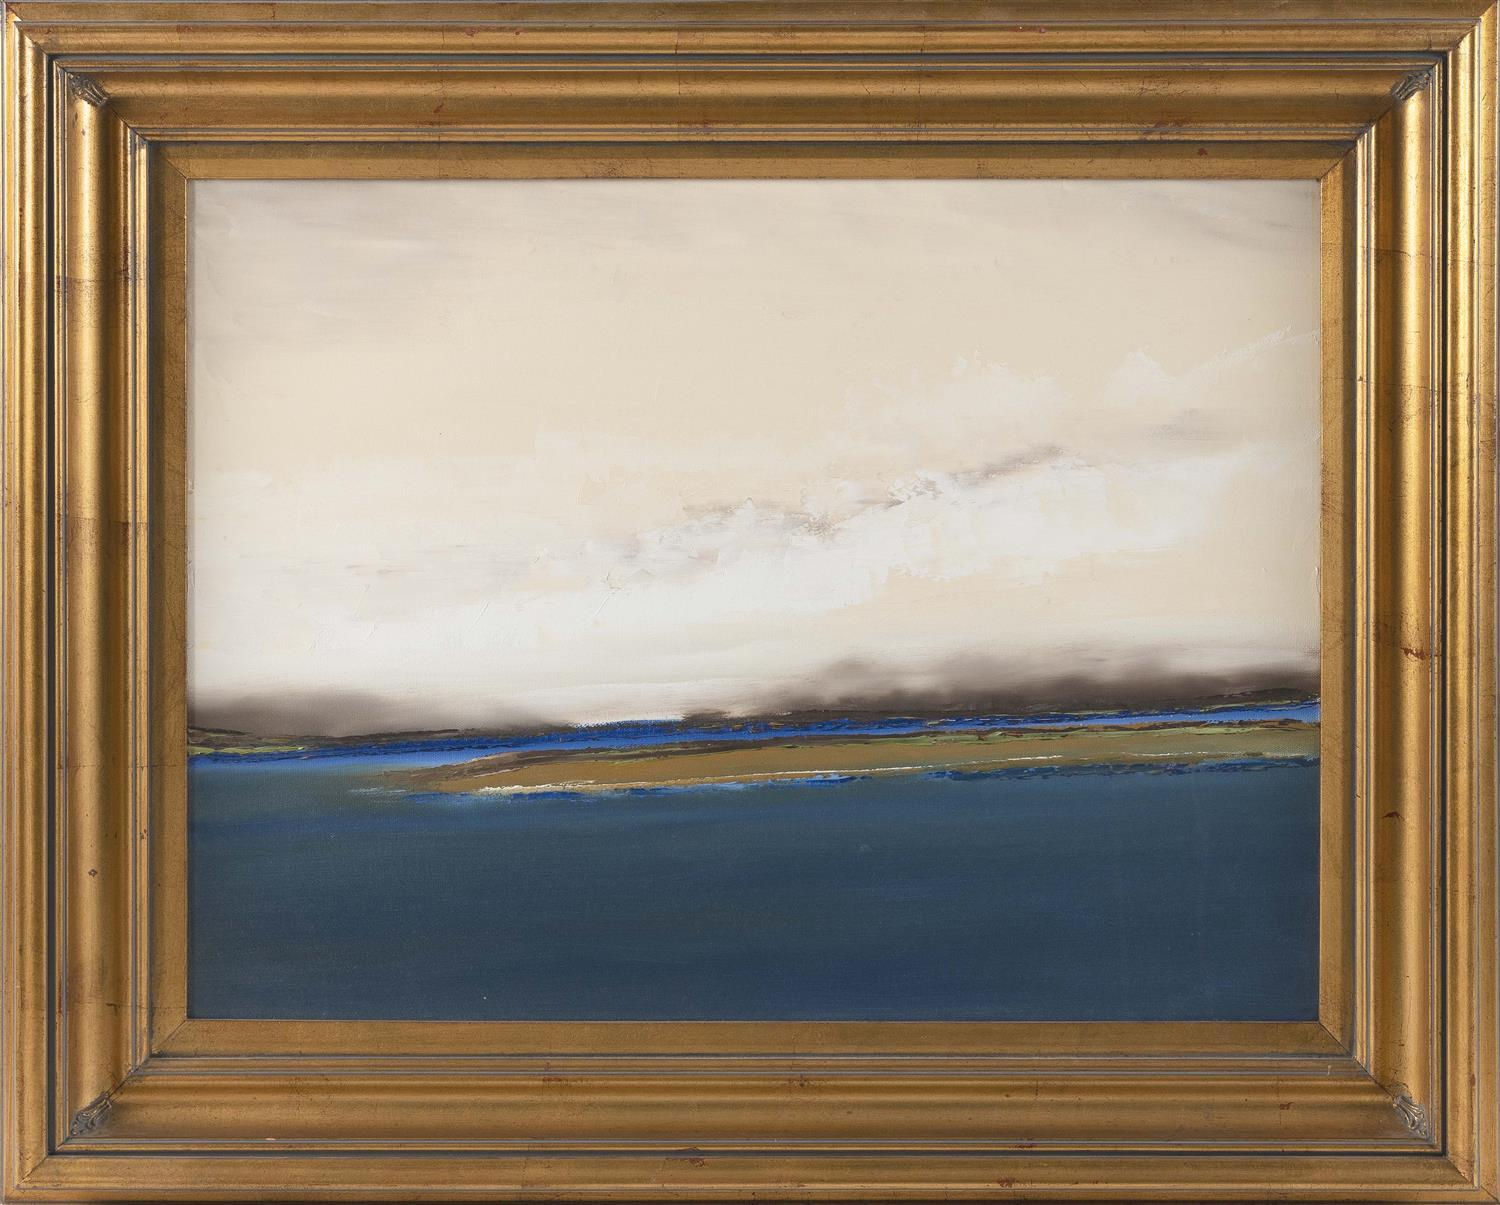 "JOE CLEMENT, America, Contemporary, Approaching storm, Provincetown, Massachusetts., Oil on canvas, 18"" x 24"". Framed 25"" x 41""."